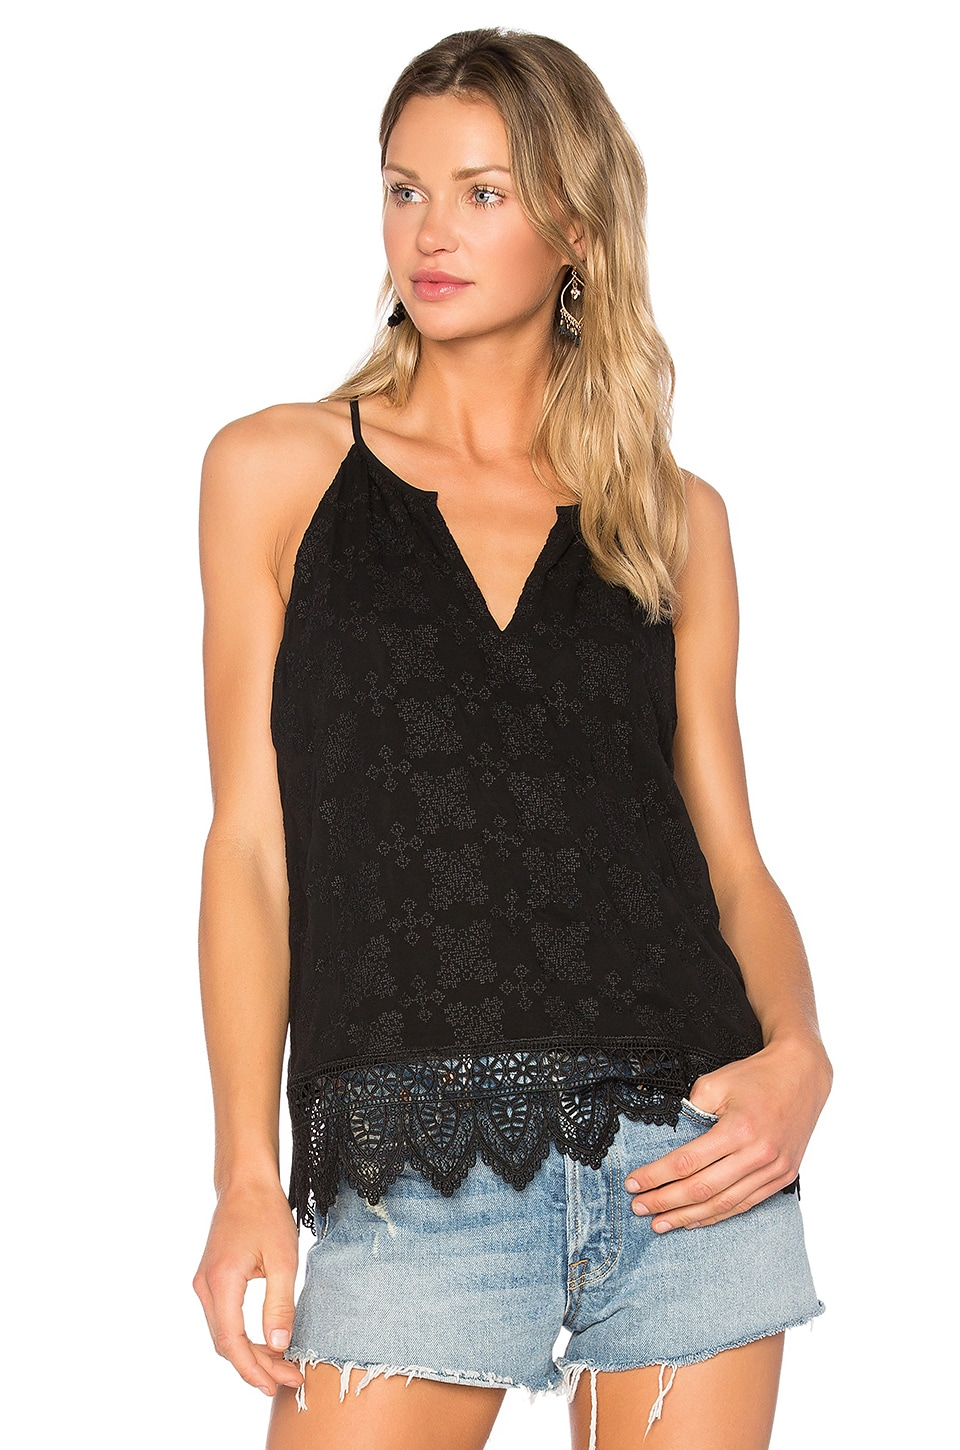 Ember Cami by Joie